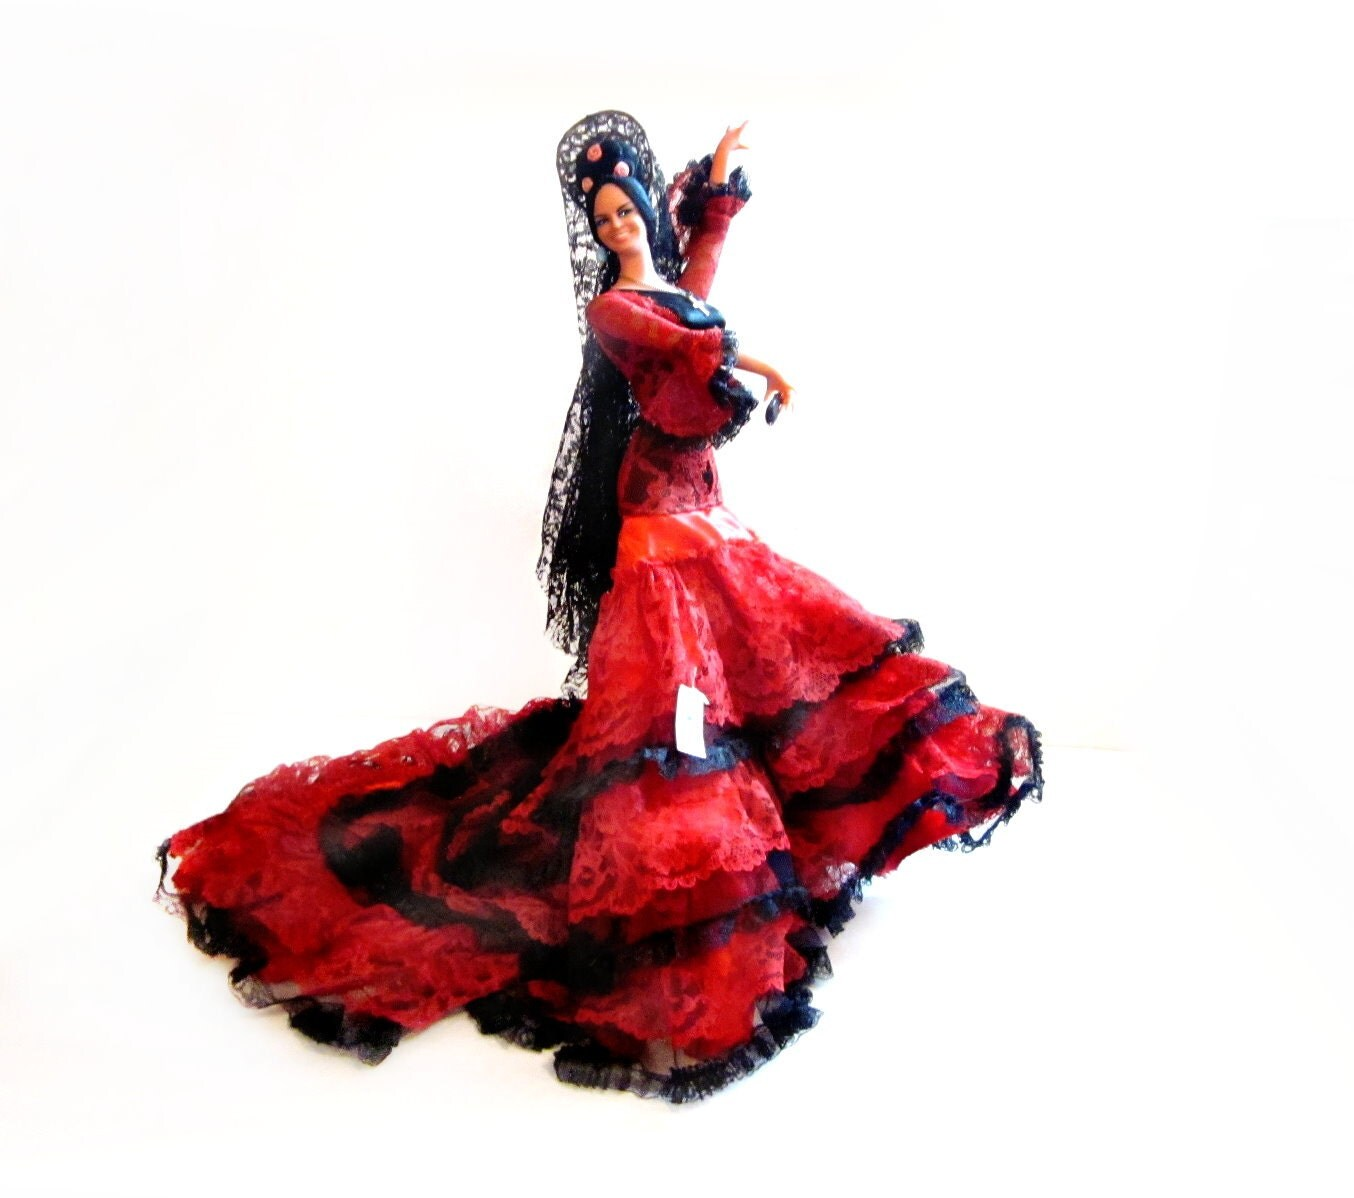 20 Inch Tall Spain Spanish Flamenco Dancer Doll By Marin